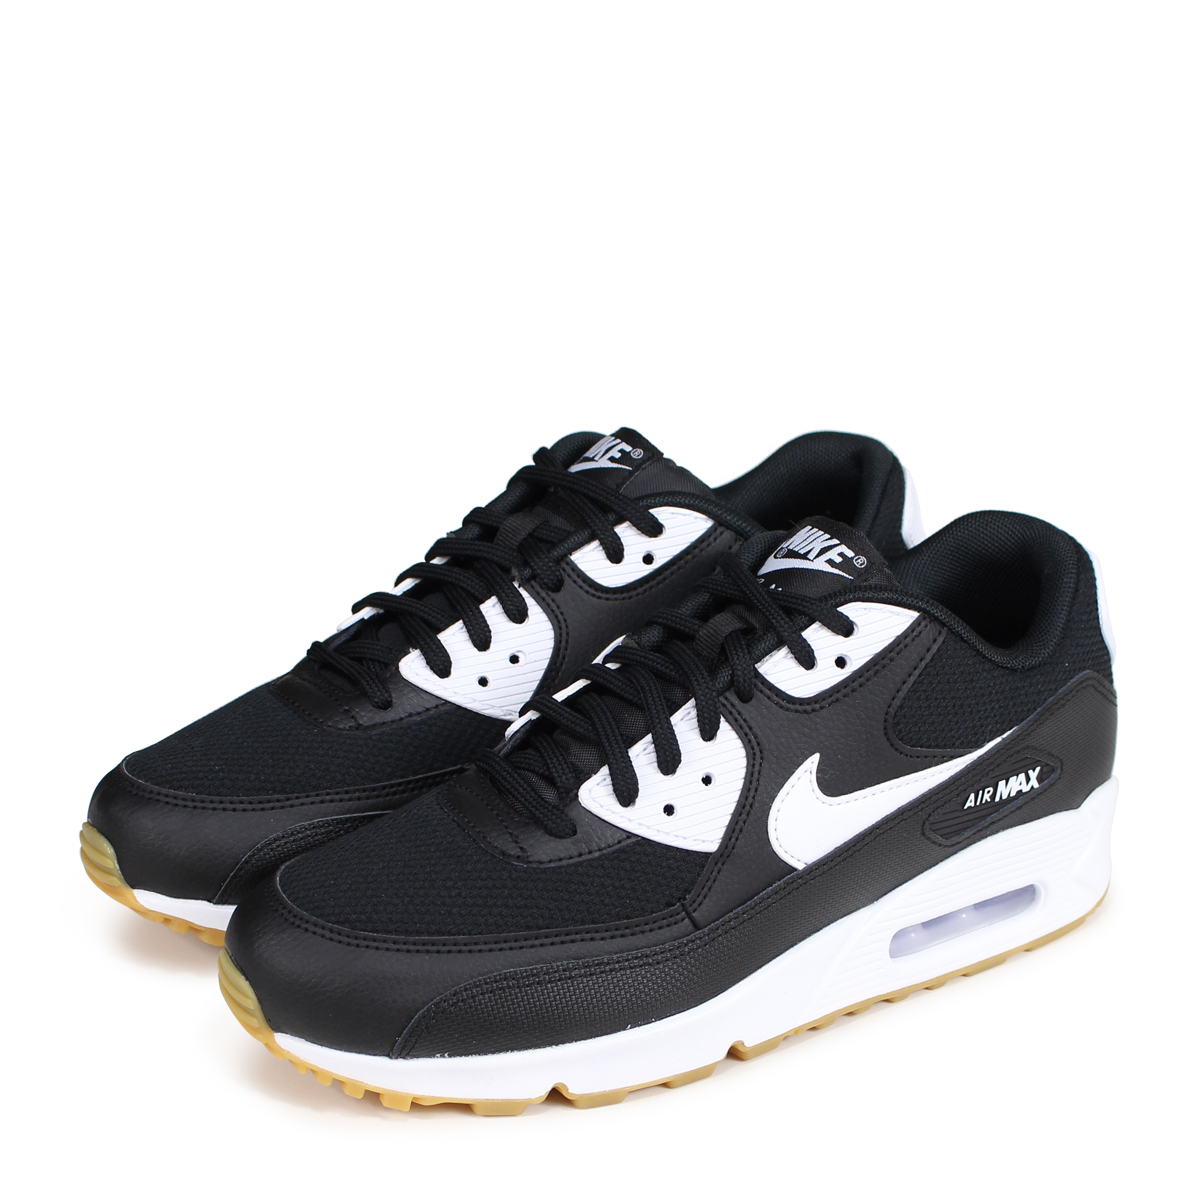 NIKE WMNS AIR MAX 90 Kie Ney AMAX 90 lady's men's sneakers 325,213 055 black [load planned Shinnyu load in reservation product 720 containing] [187]